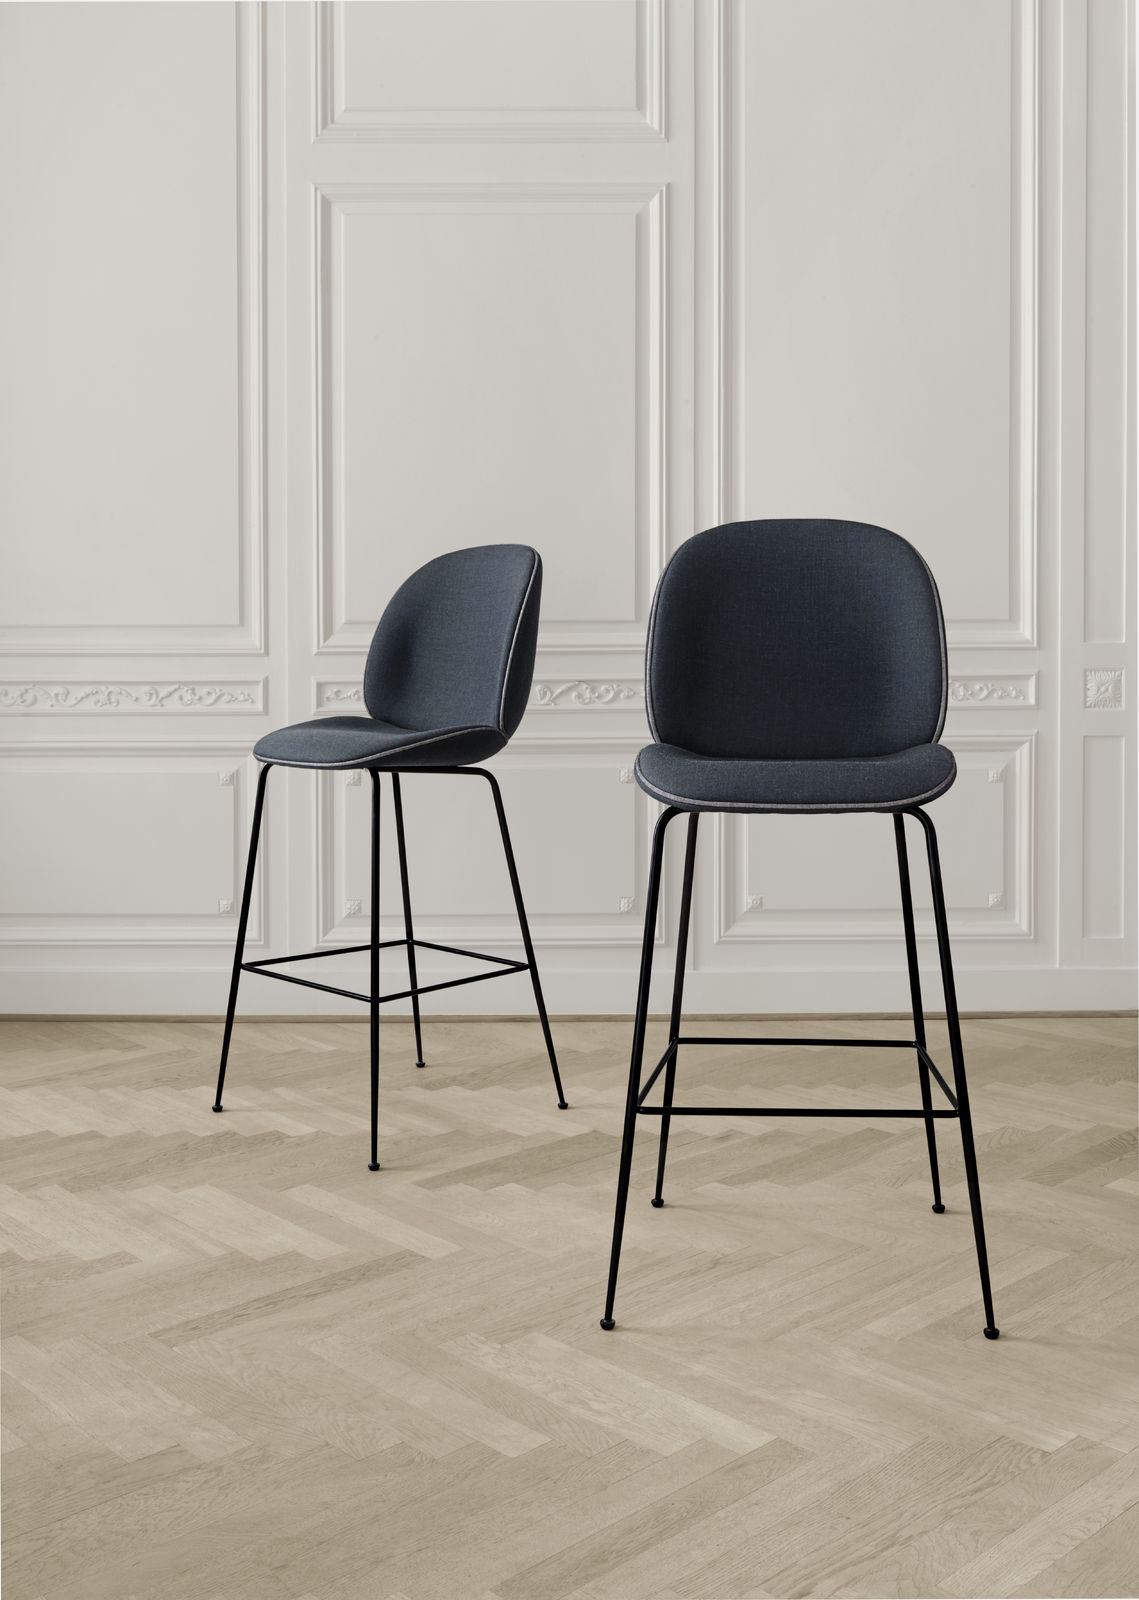 Beetle Stools - remix 873 (pipe 152)-1600x1600